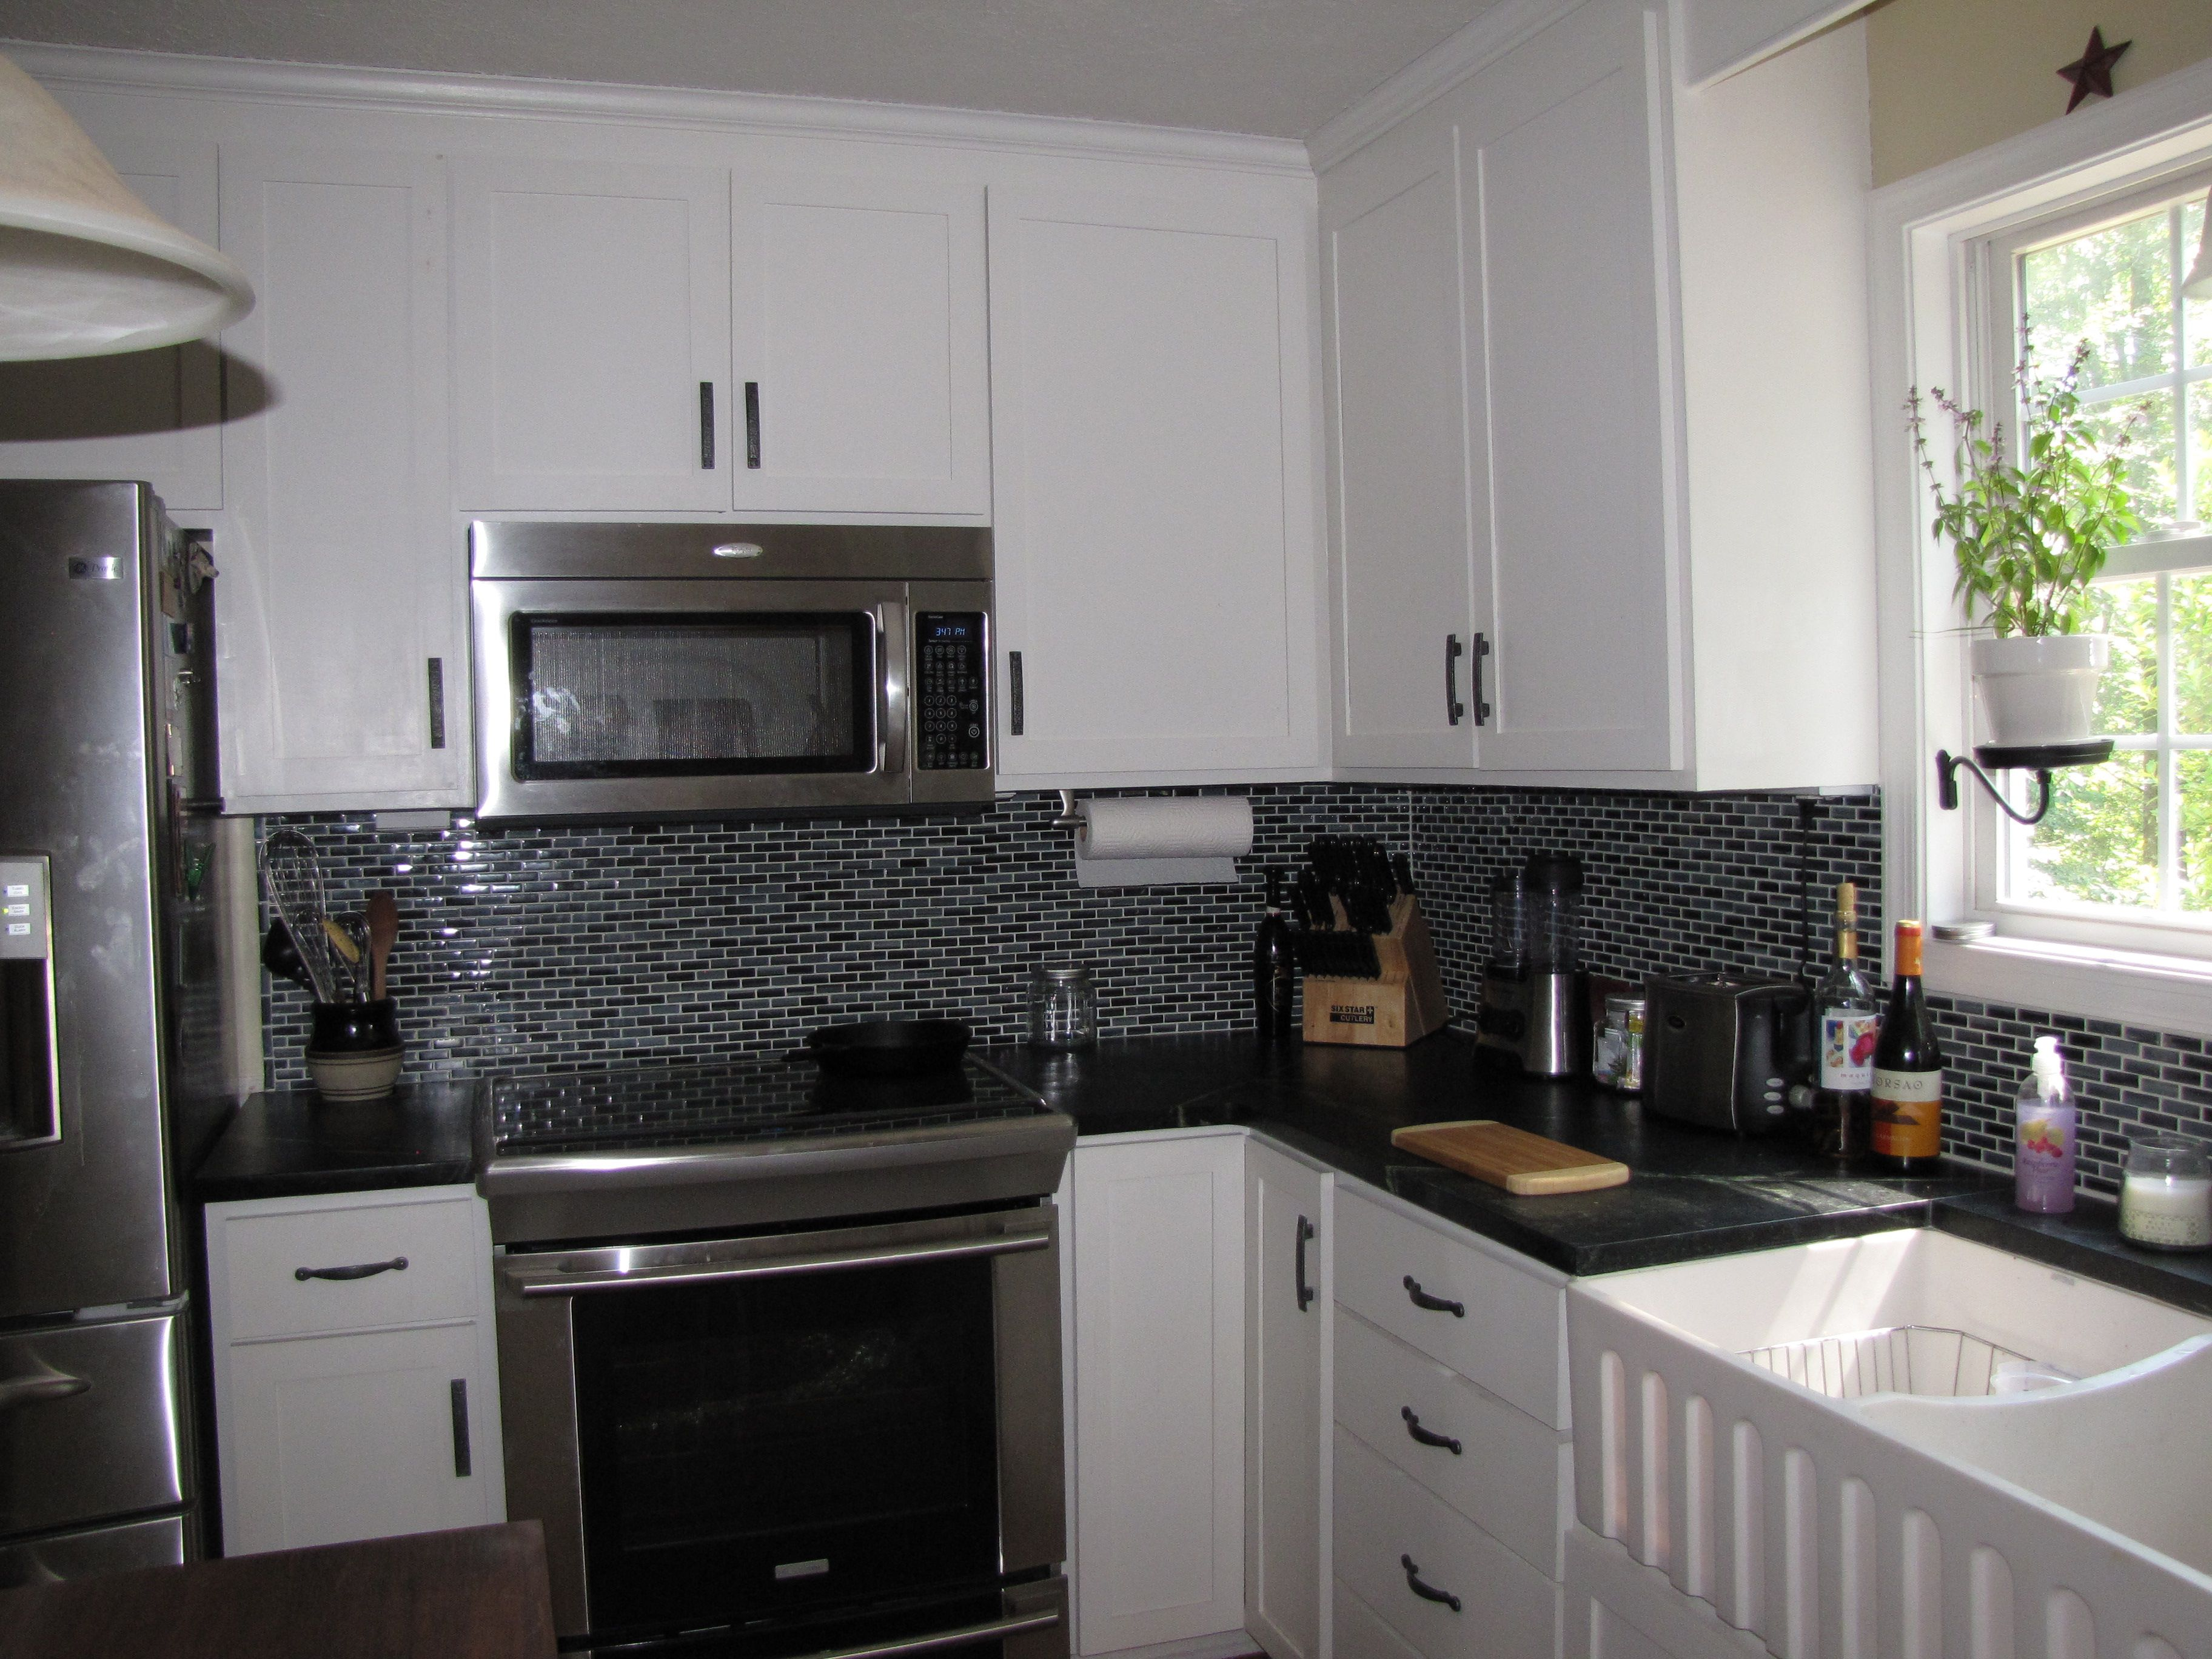 - Black And Gray Backsplash- Goes Well W/ White Cabinets And